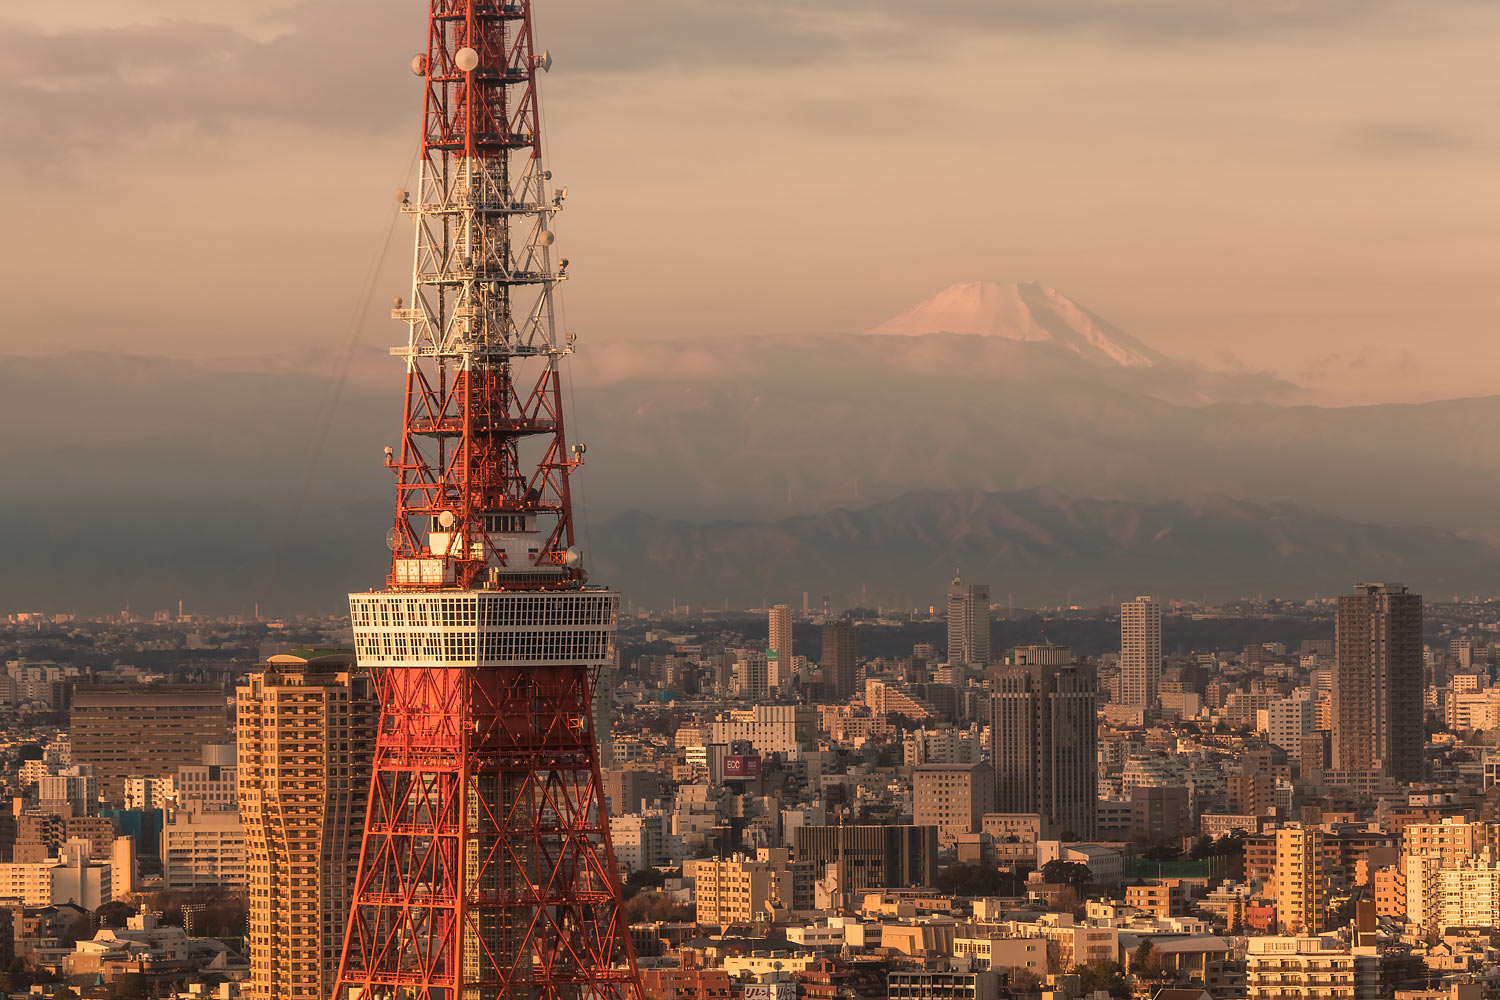 The Tokyo Tower and Mt. Fuji at Sunrise